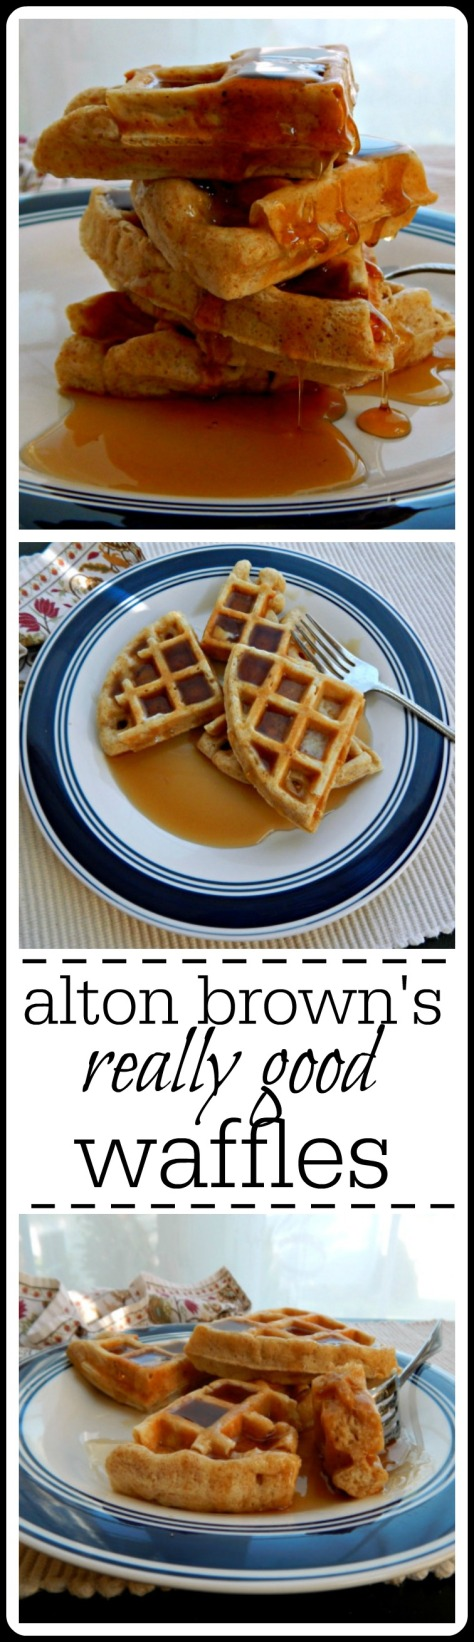 Alton Brown's Really Good Waffles: Yes, they are!! :) Buttermilk recipe, not an over night but takes just a few minutes to mix.